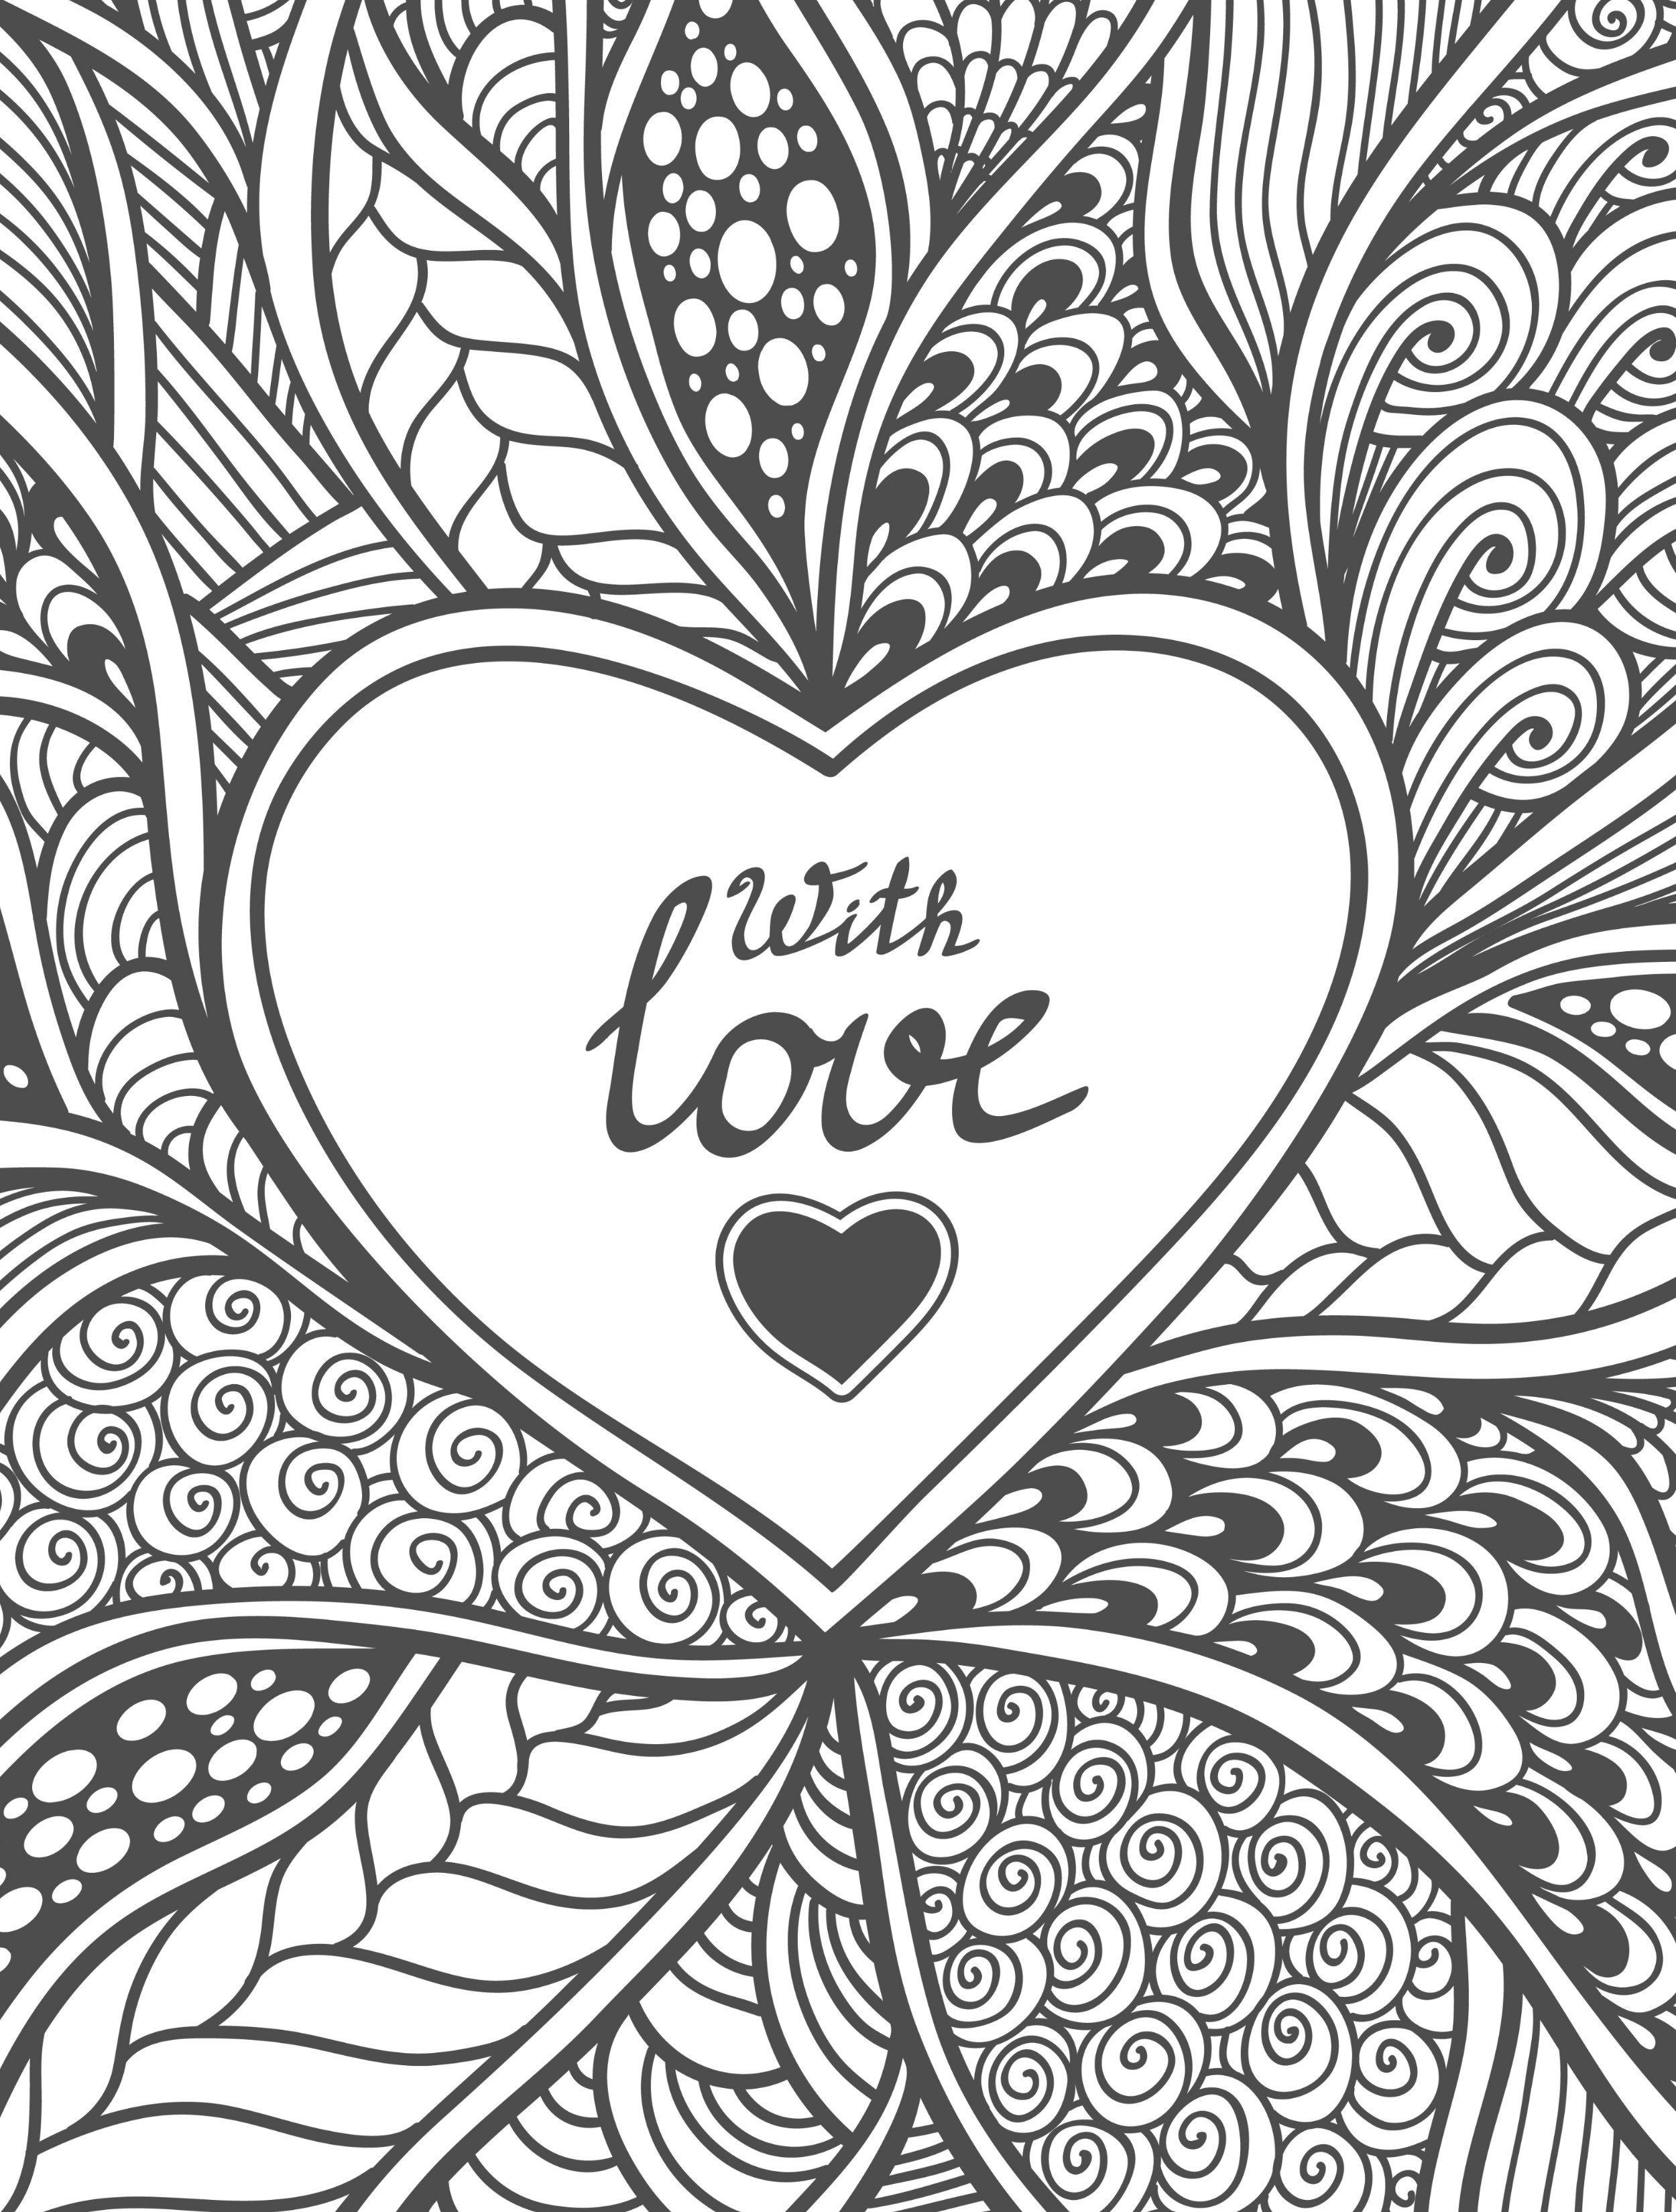 Pattern Coloring Pages Extravagant Coloring Page Patterns Best Coloring Ideas Albanysinsanity Com Love Coloring Pages Valentines Day Coloring Page Heart Coloring Pages